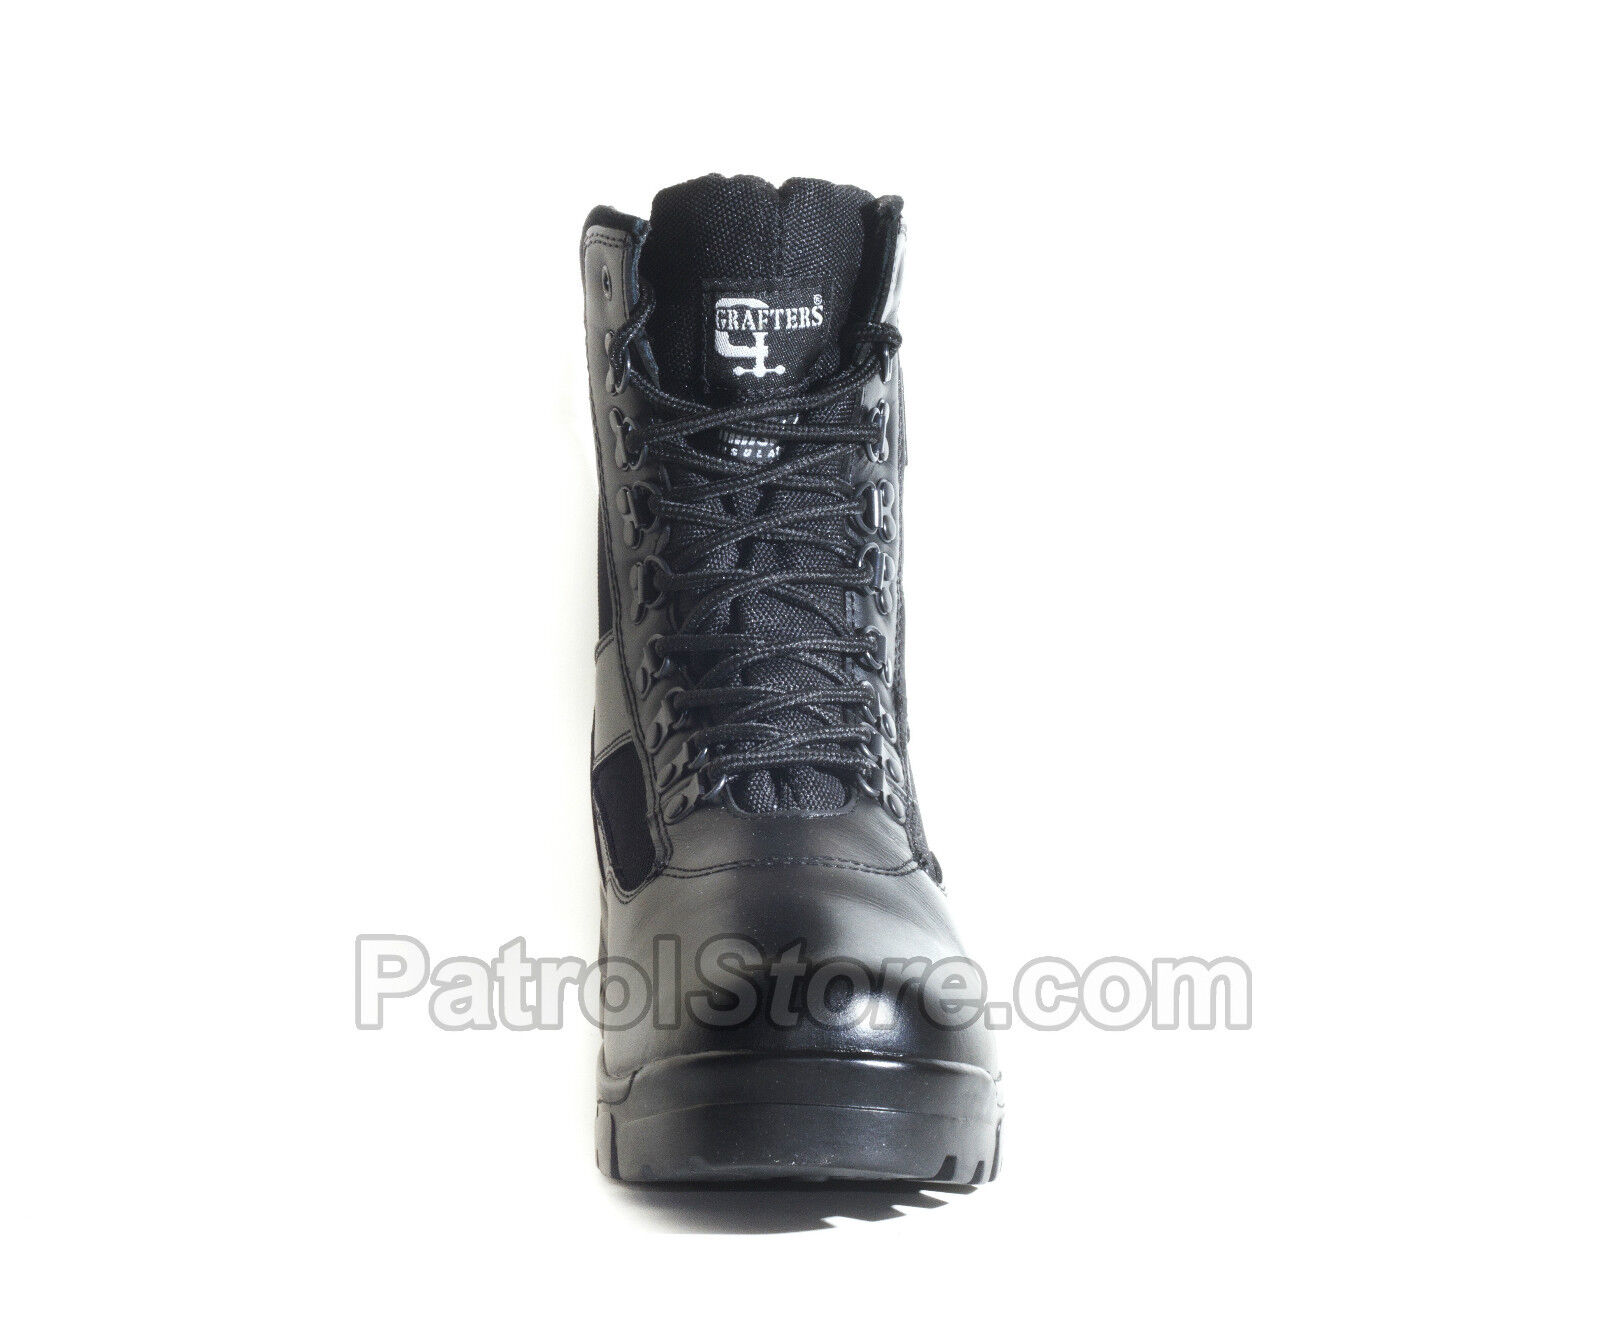 Maîtres greffeurs Sniper 8 Police Boot Waterproof Boot Police cuir et Nylon M482A bee55a